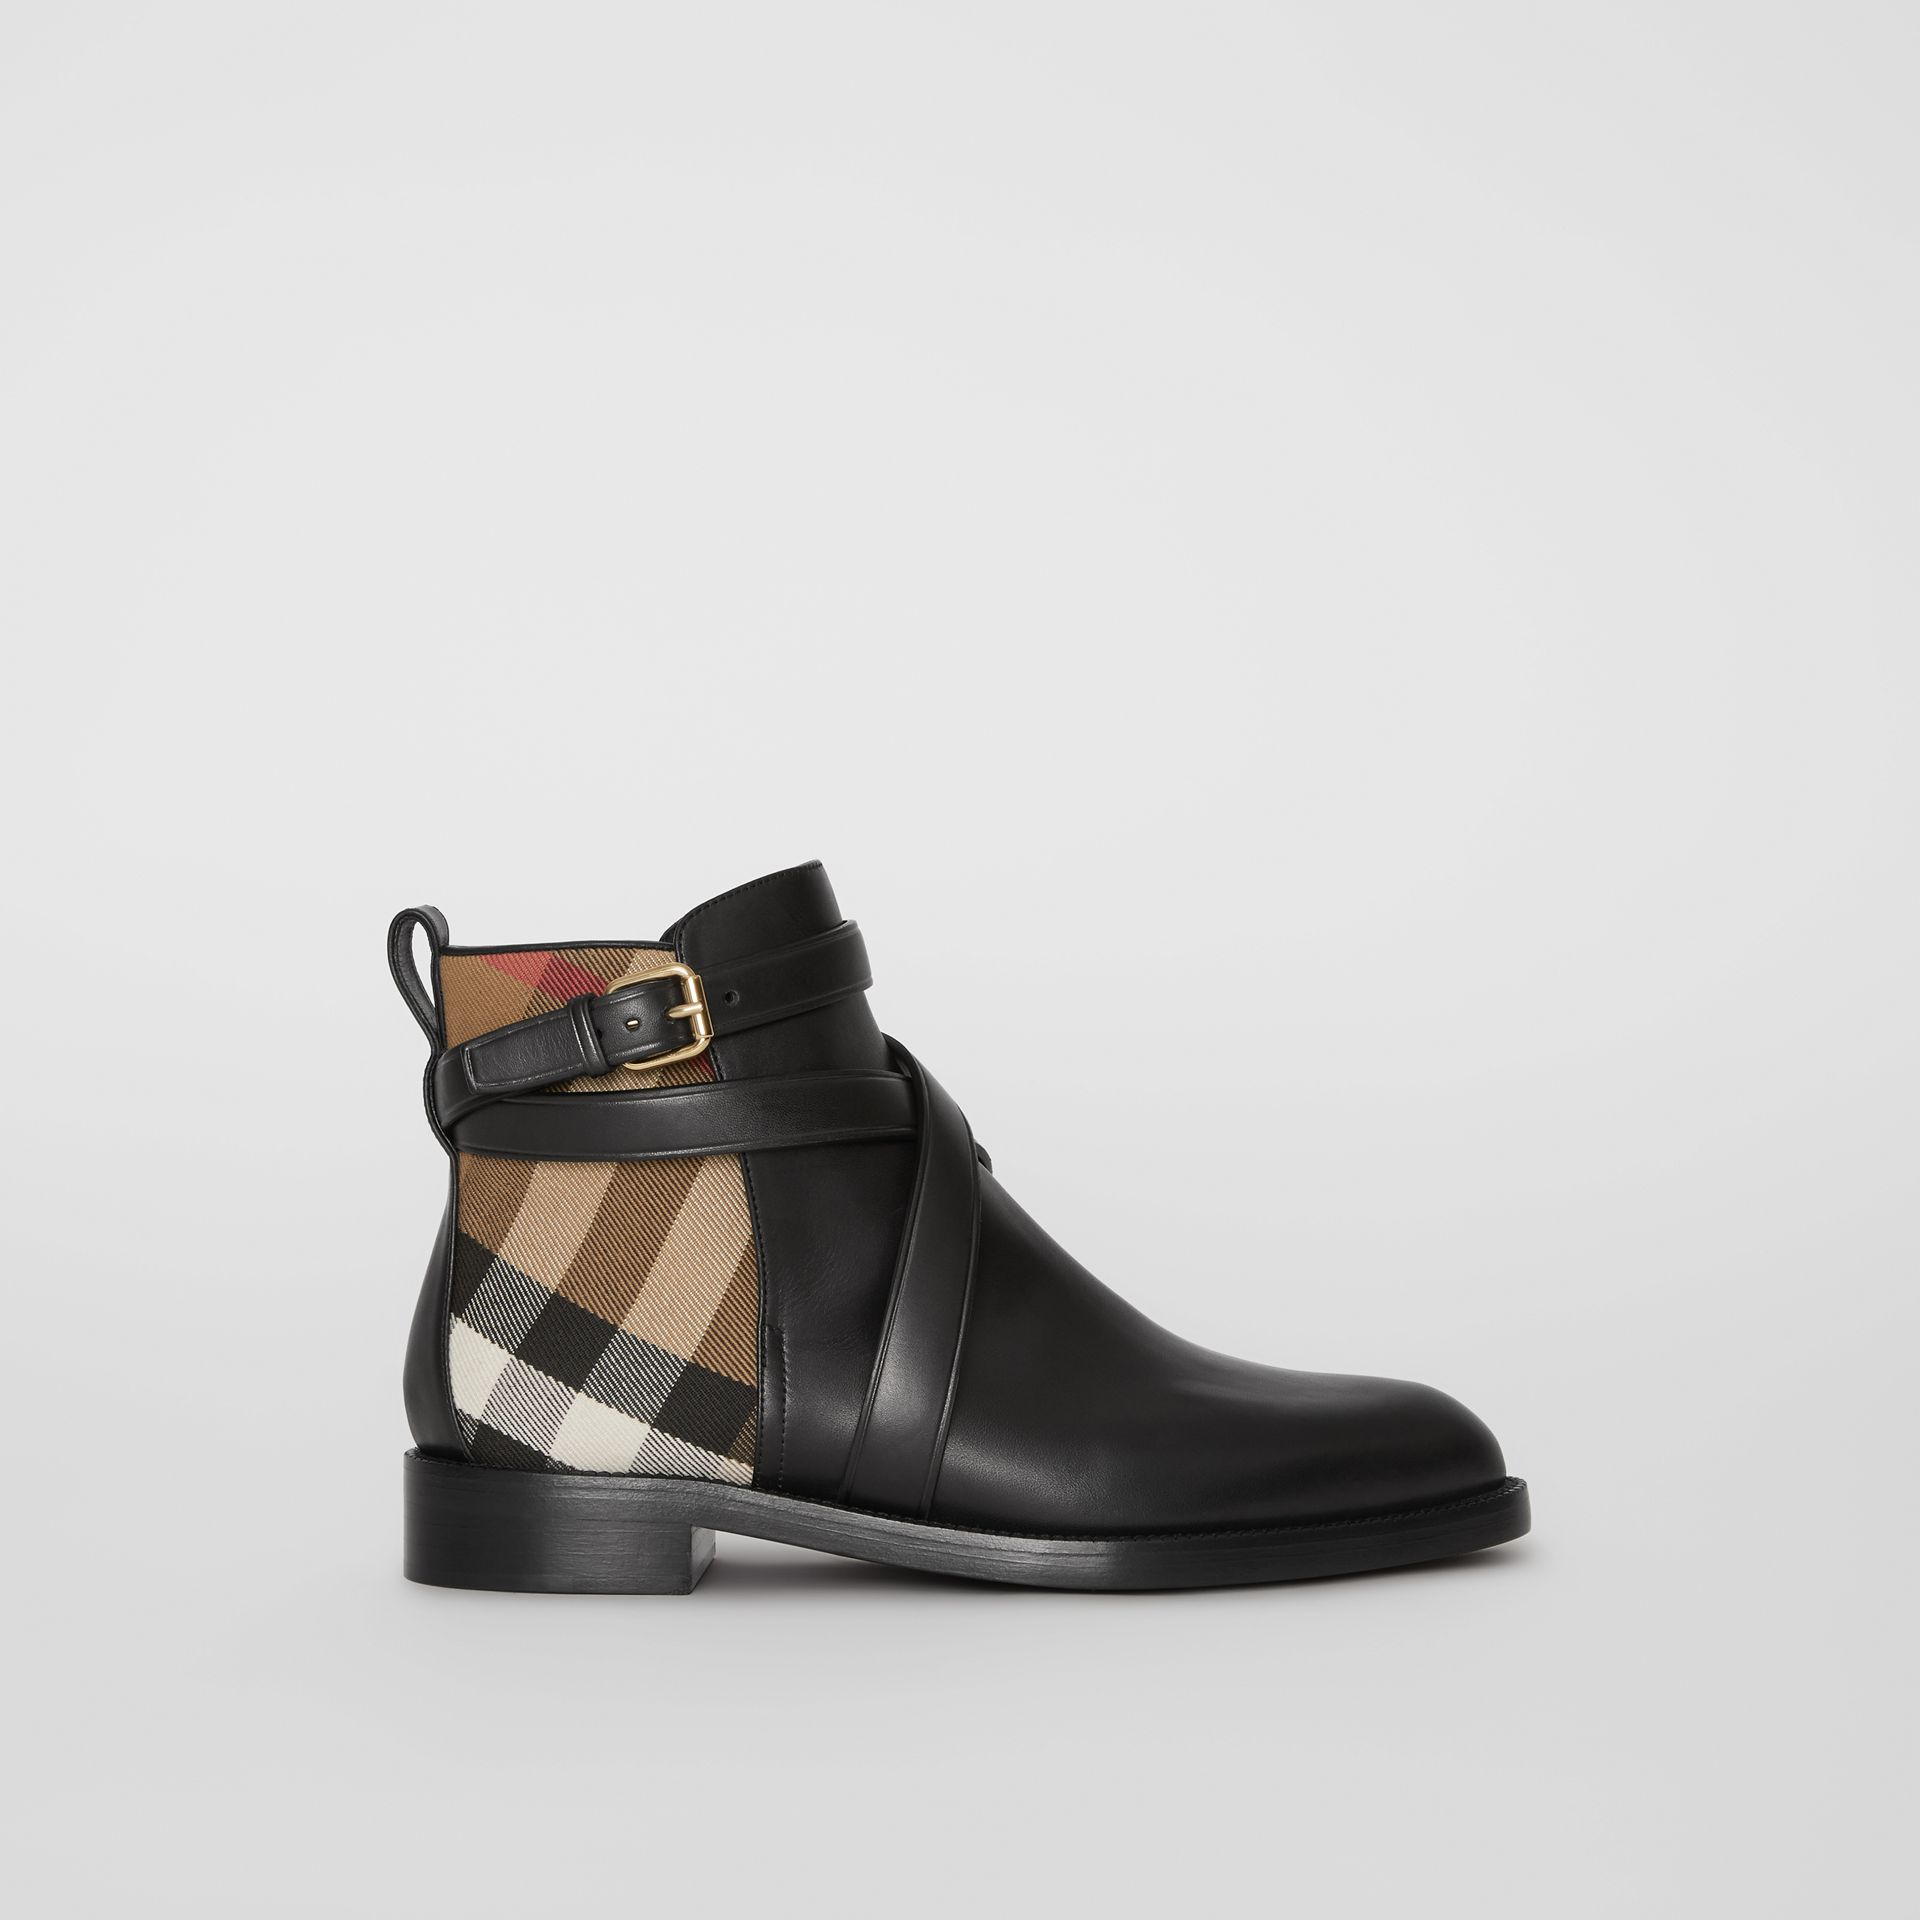 House Check and Leather Ankle Boots in Black - Women | Burberry United States - gallery image 5